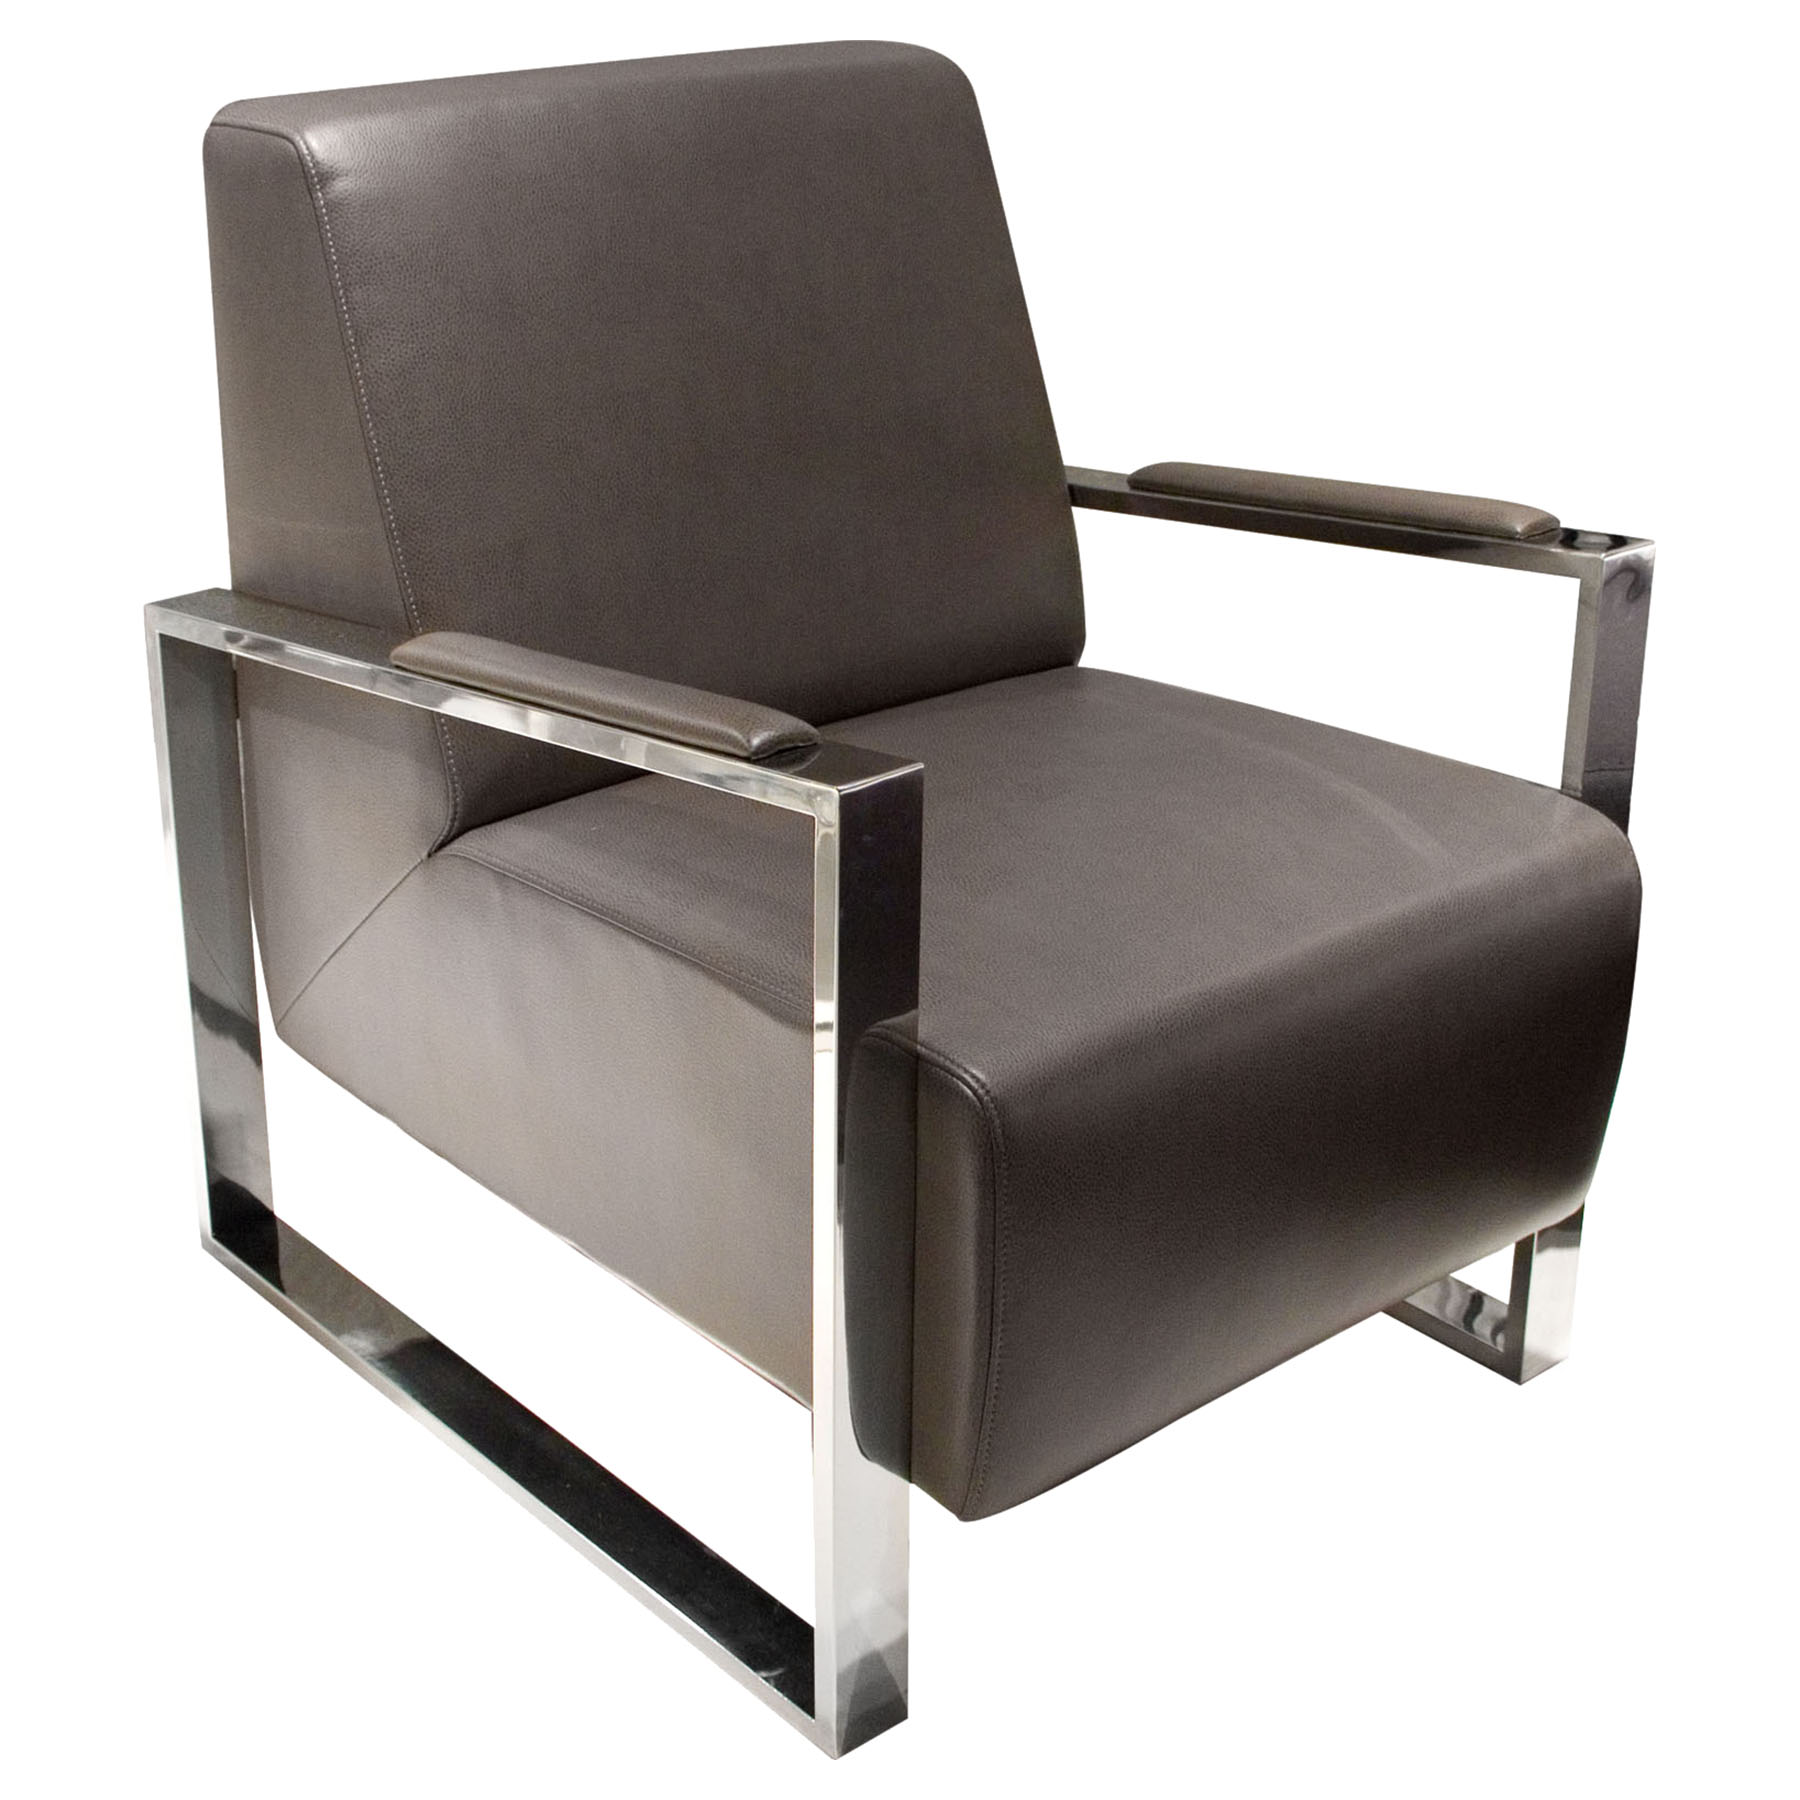 chair and steel louis xv chairs century bonded leather armchair elephant gray stainless